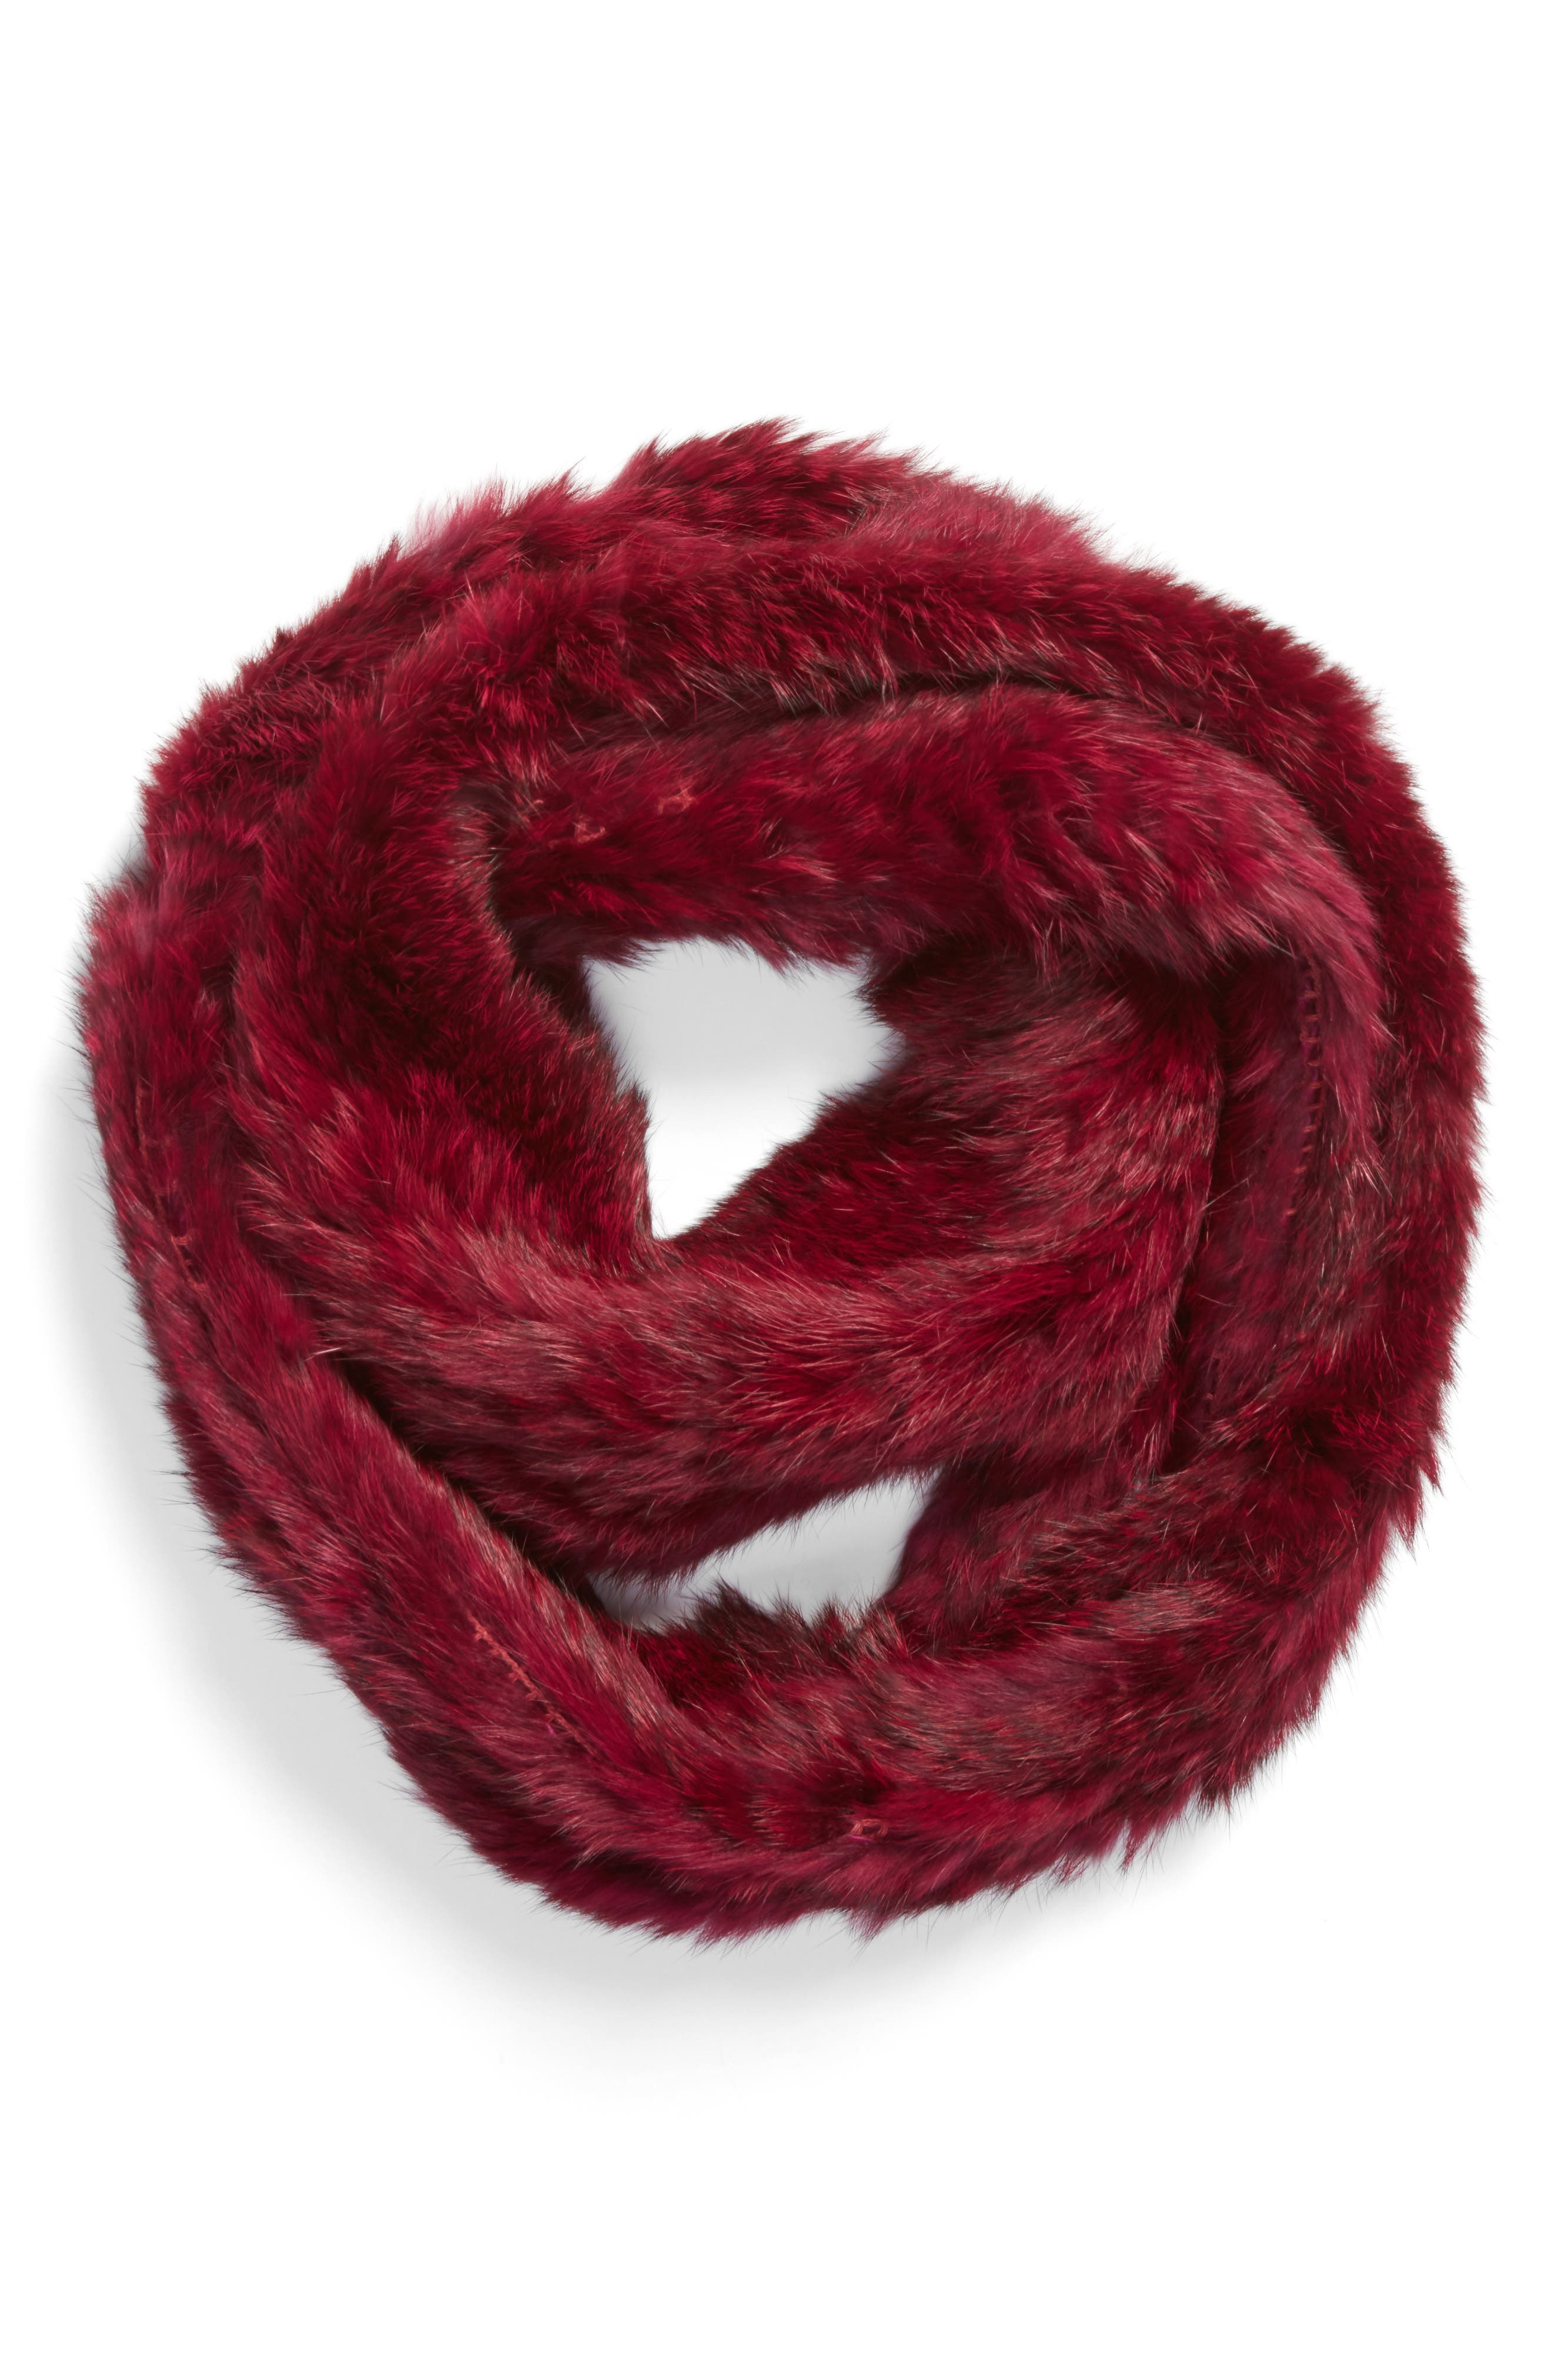 Overdyed Genuine Rabbit Fur Infinity Scarf,                             Alternate thumbnail 3, color,                             Ruby